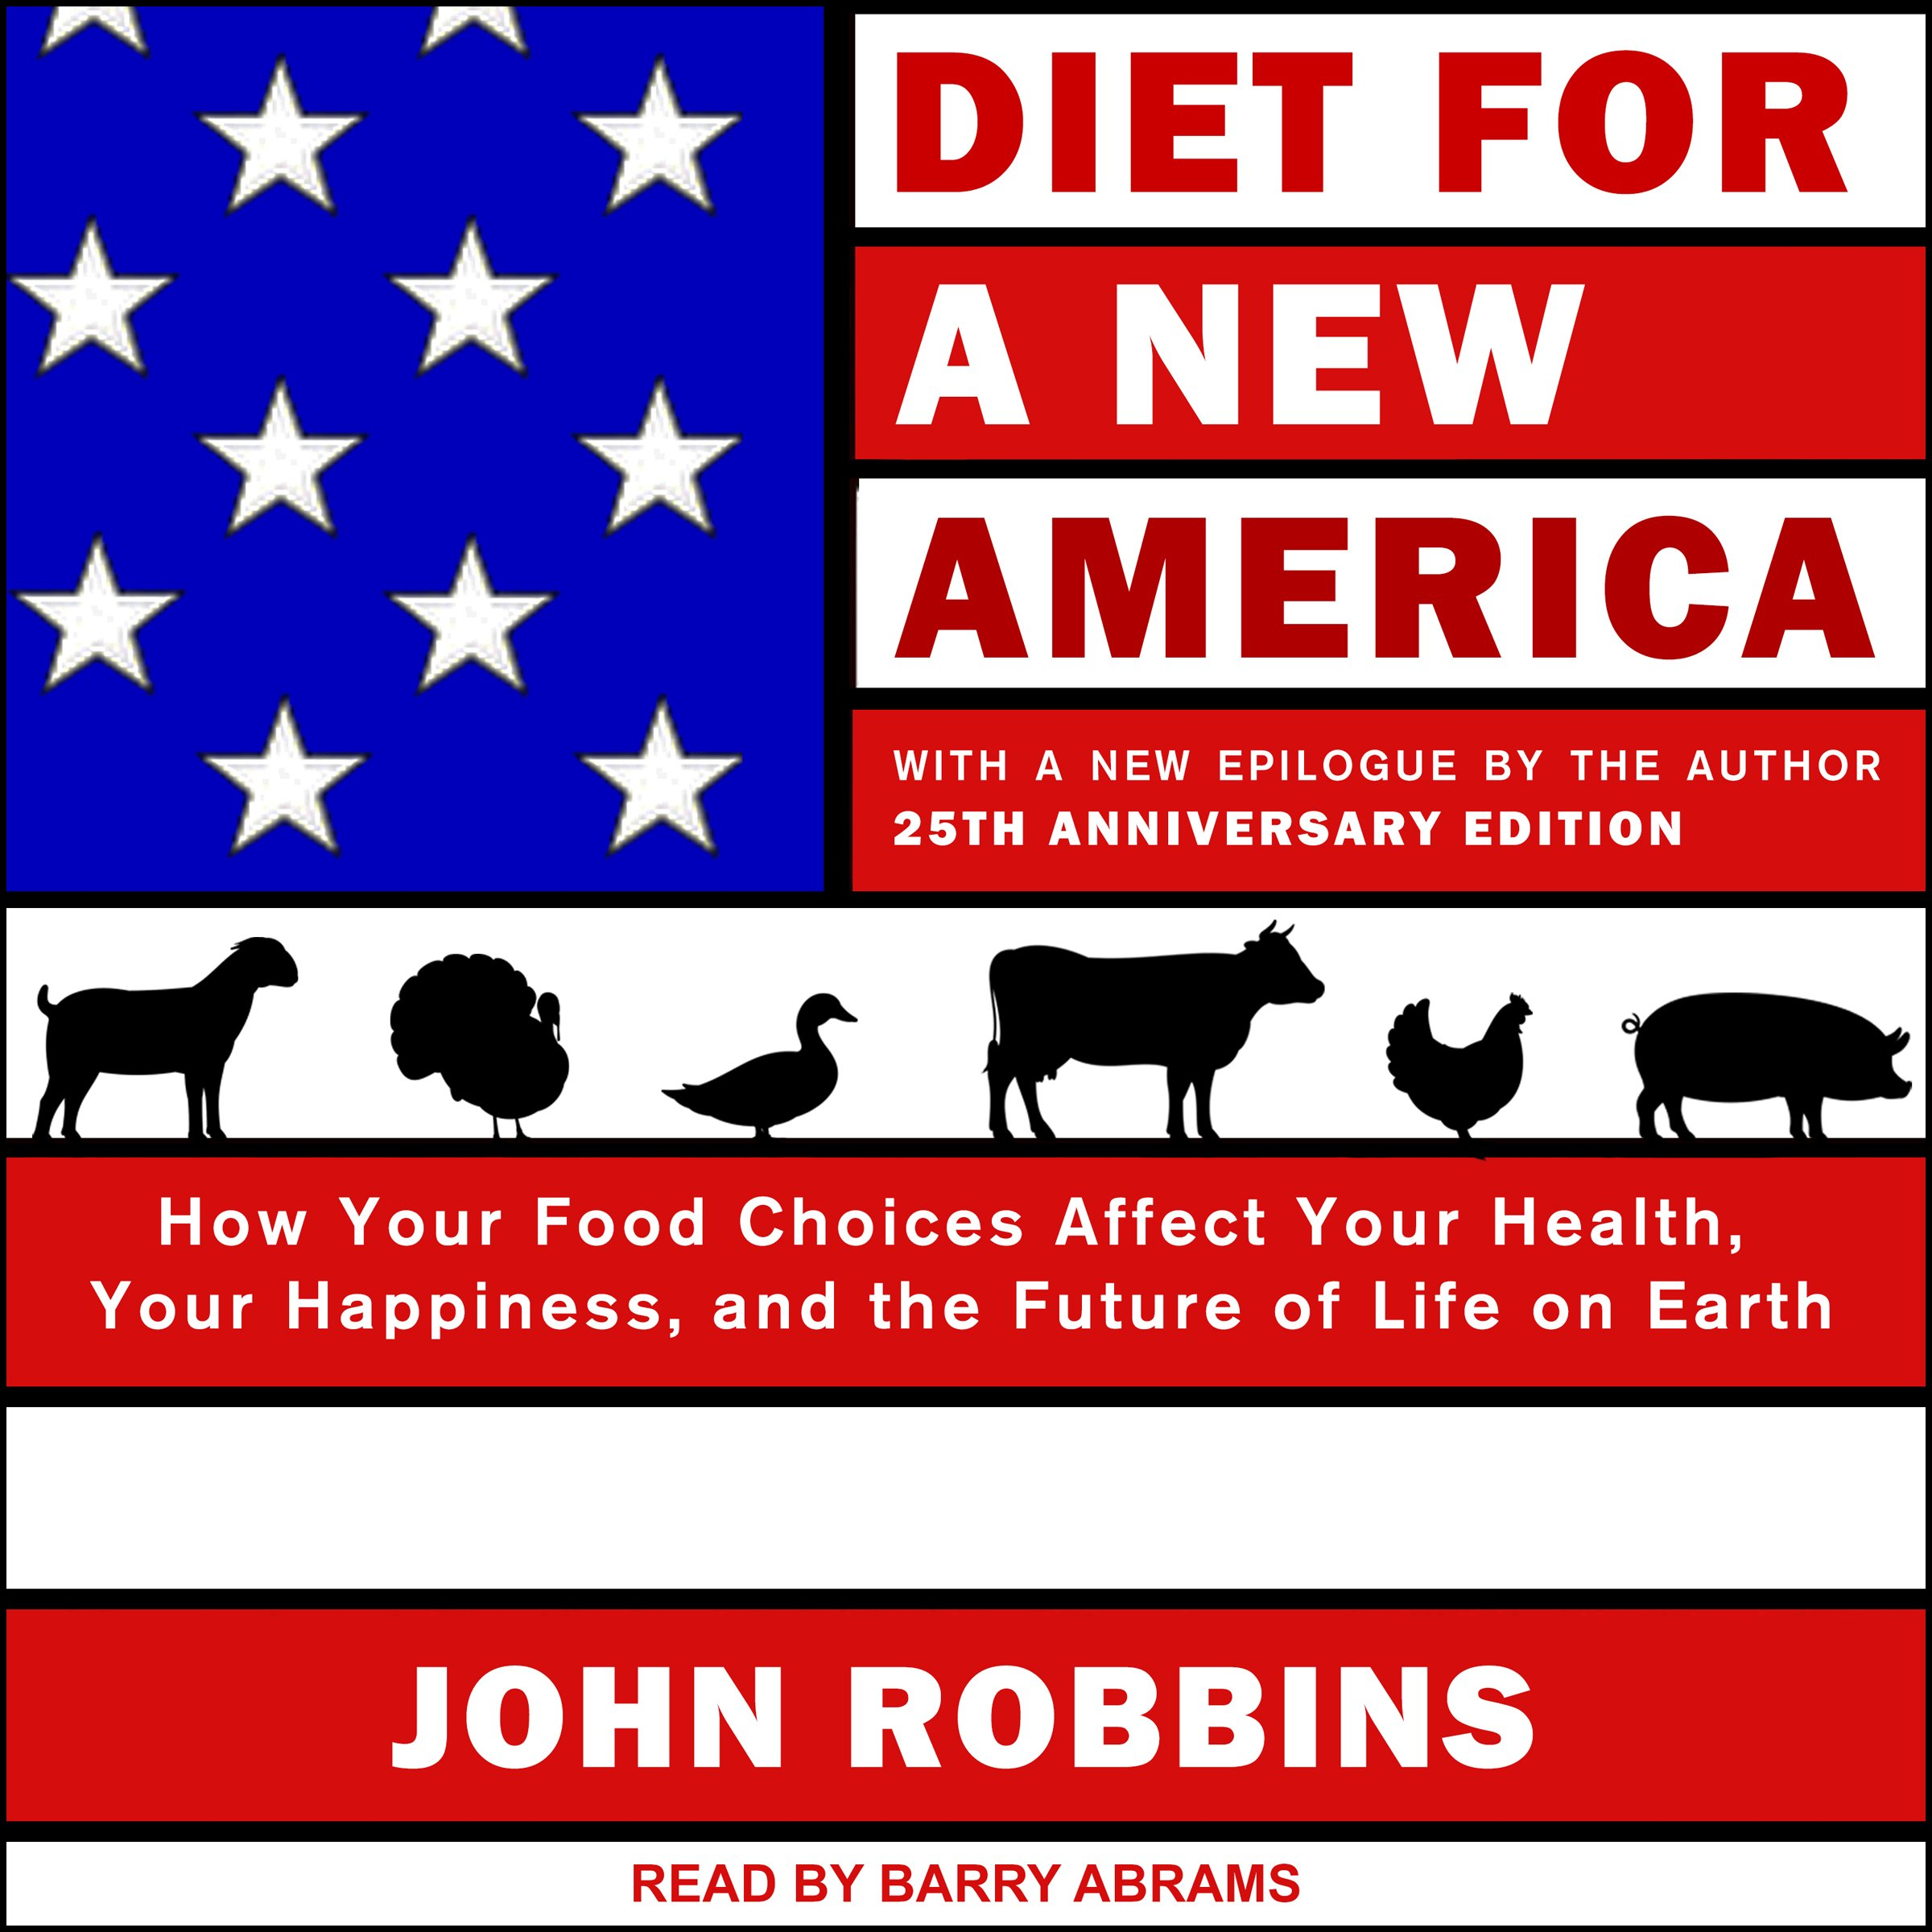 Diet for a New America: 25th Anniversary Edition: How Your Food Choices Affect Your Health, Happiness and the Future of Life on Earth